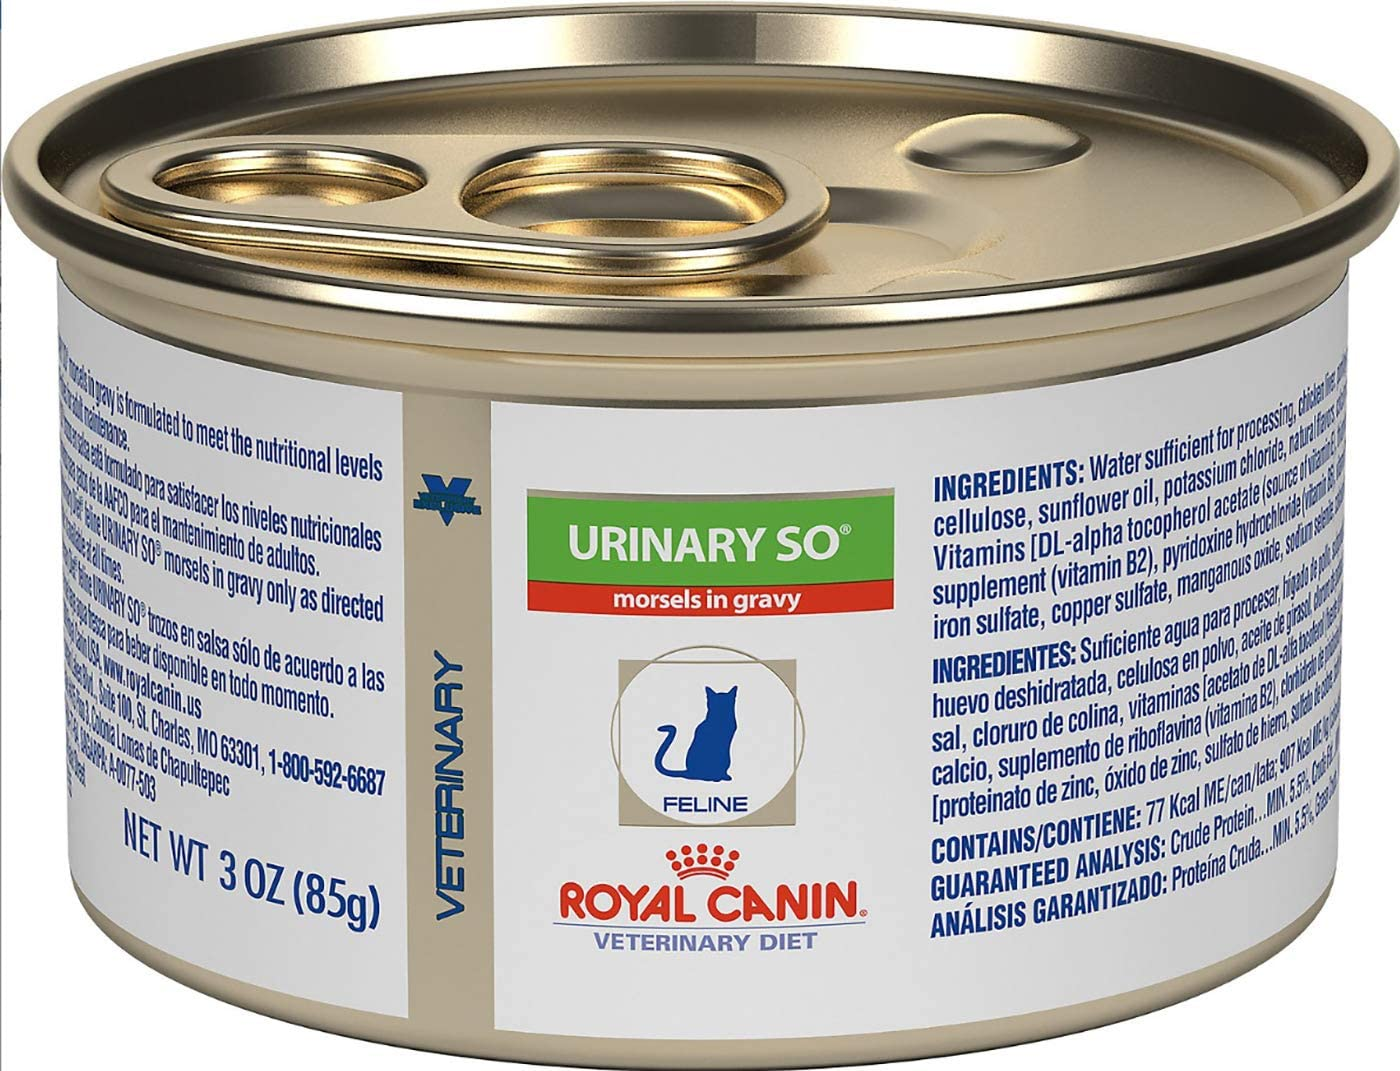 Royal Canin Veterinary Diet Urinary SO Moderate Calorie Morsels in Gravy Canned Cat Food, 3-oz can, case of 24 by Royal Canin Veterinary Diet